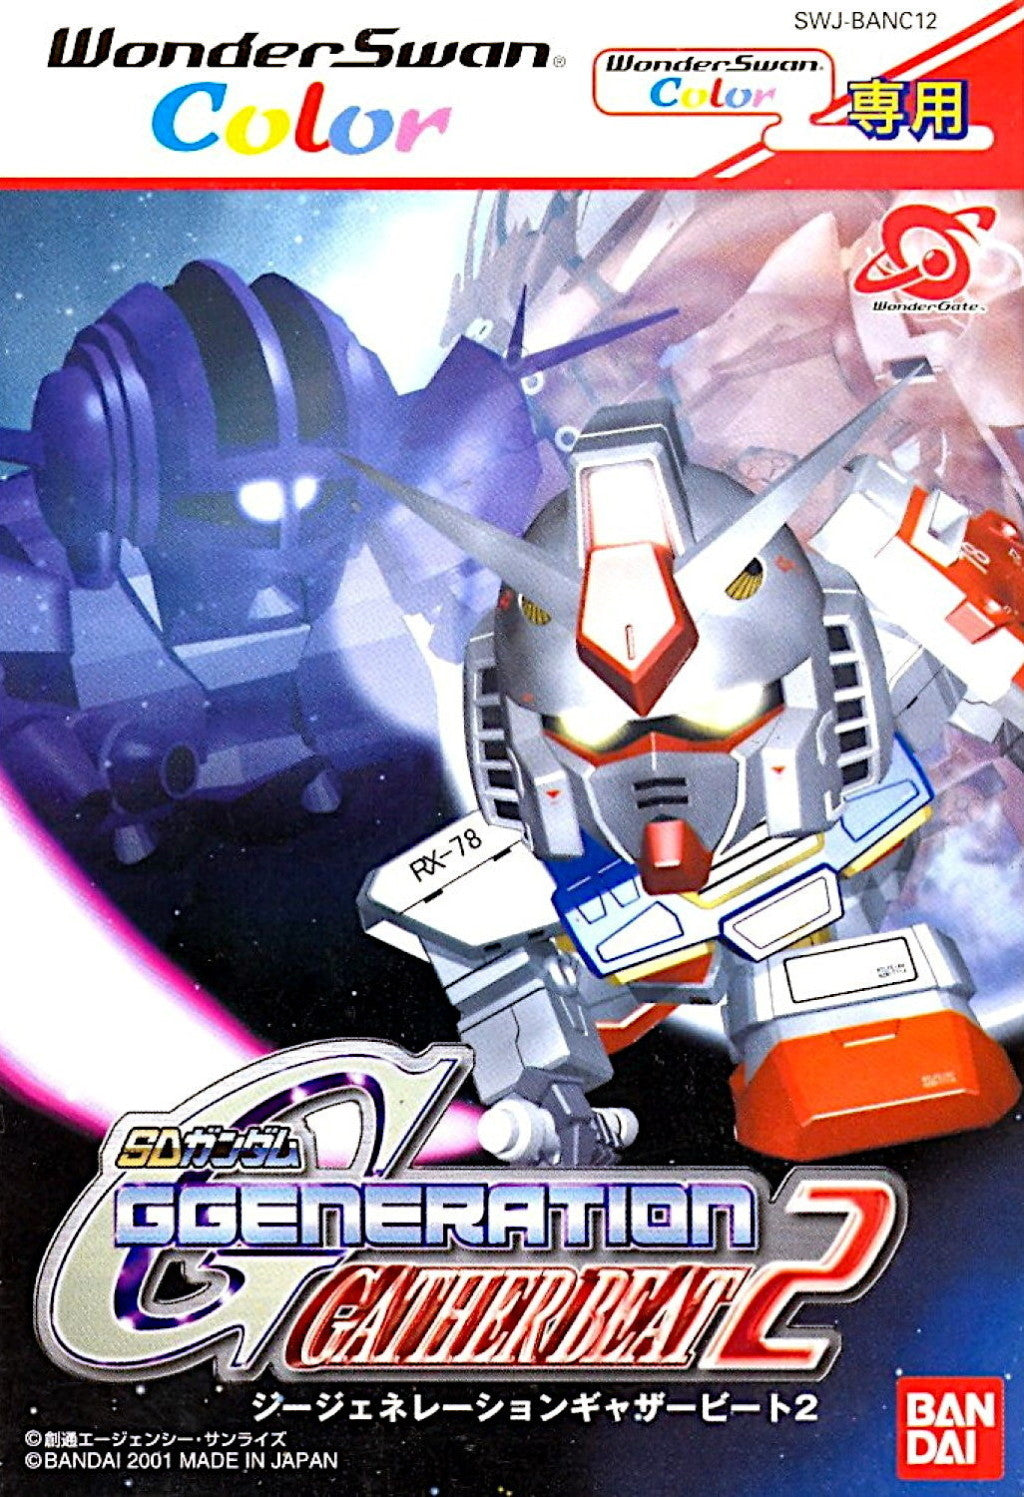 SD Gundam G Generation: Gather Beat 2 - WonderSwan Color (Japan)